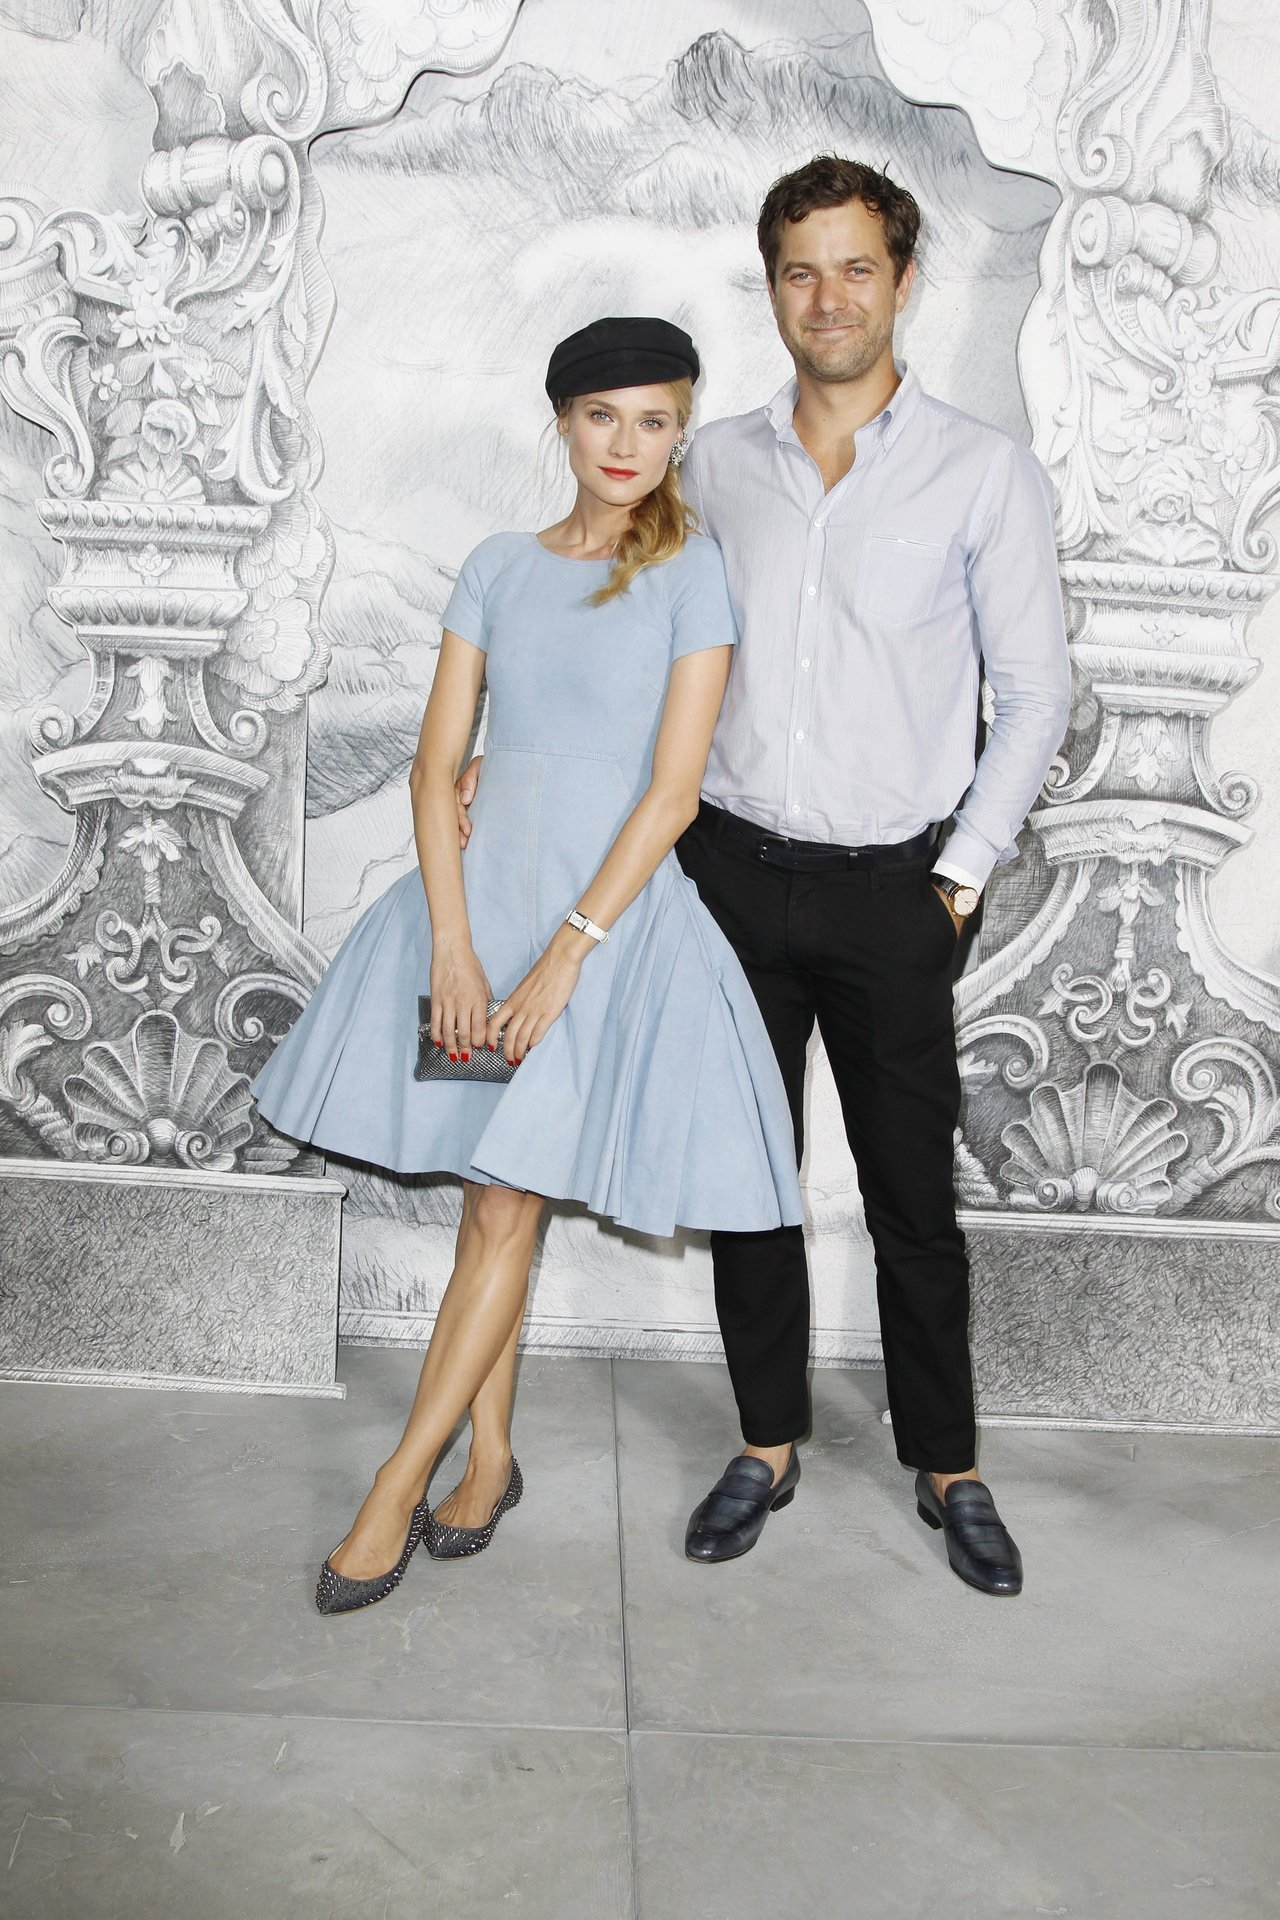 Diane Kruger and Joshua Jackson at Chanel Haute Couture - Fall 2012 / Photo Courtesy of Chanel Click here to see all the stars at the Haute Couture shows in Paris.